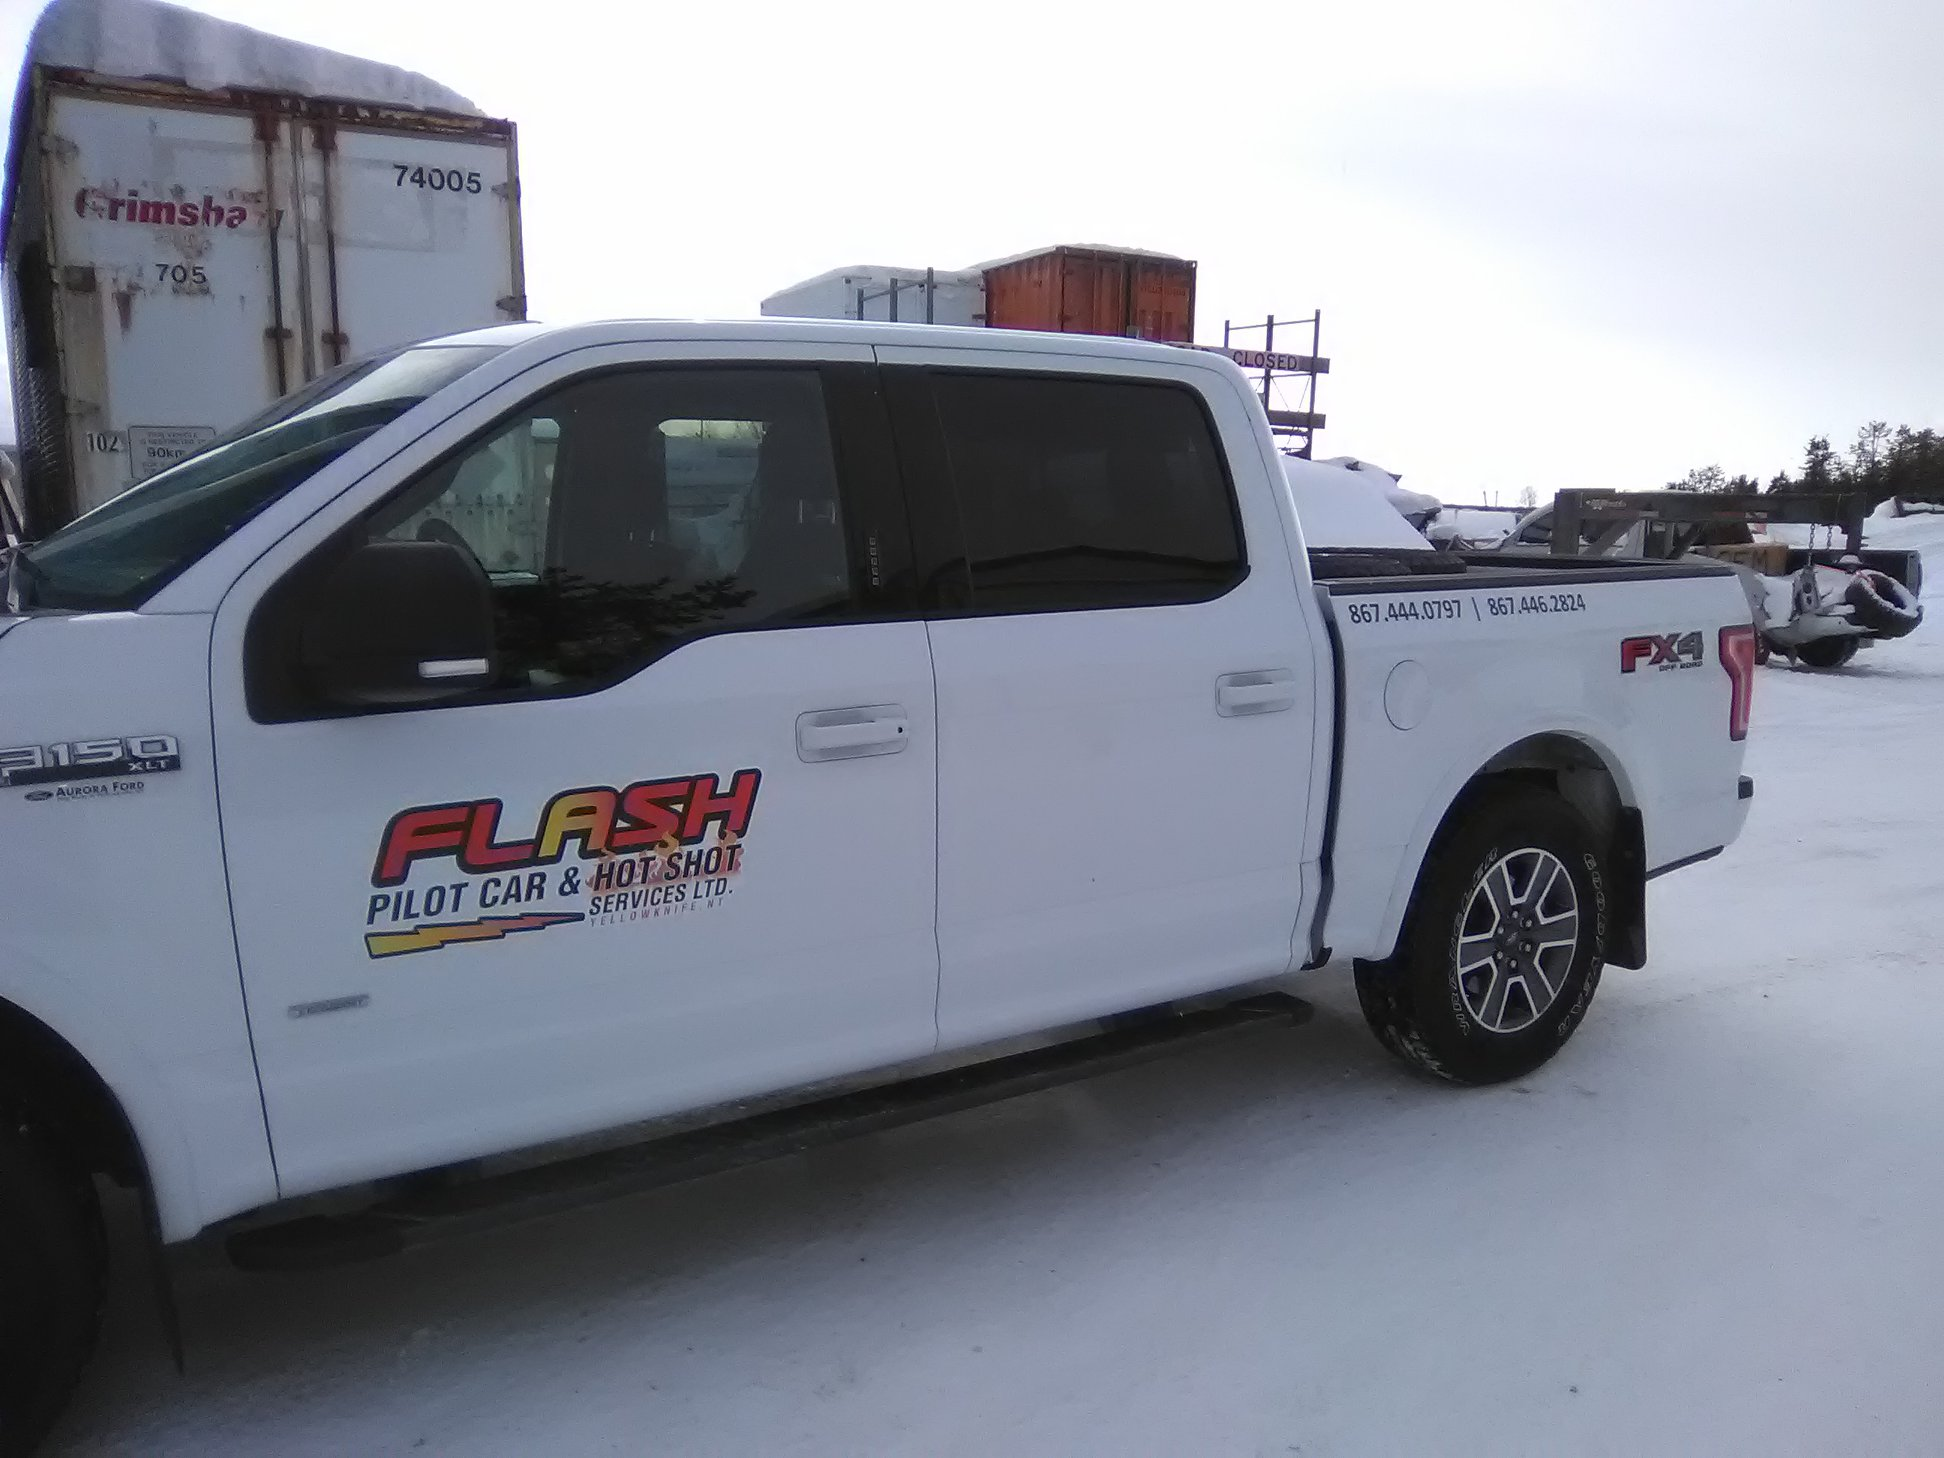 Flash Pilot Car & Hot Shot Services Ltd vehicle decal.